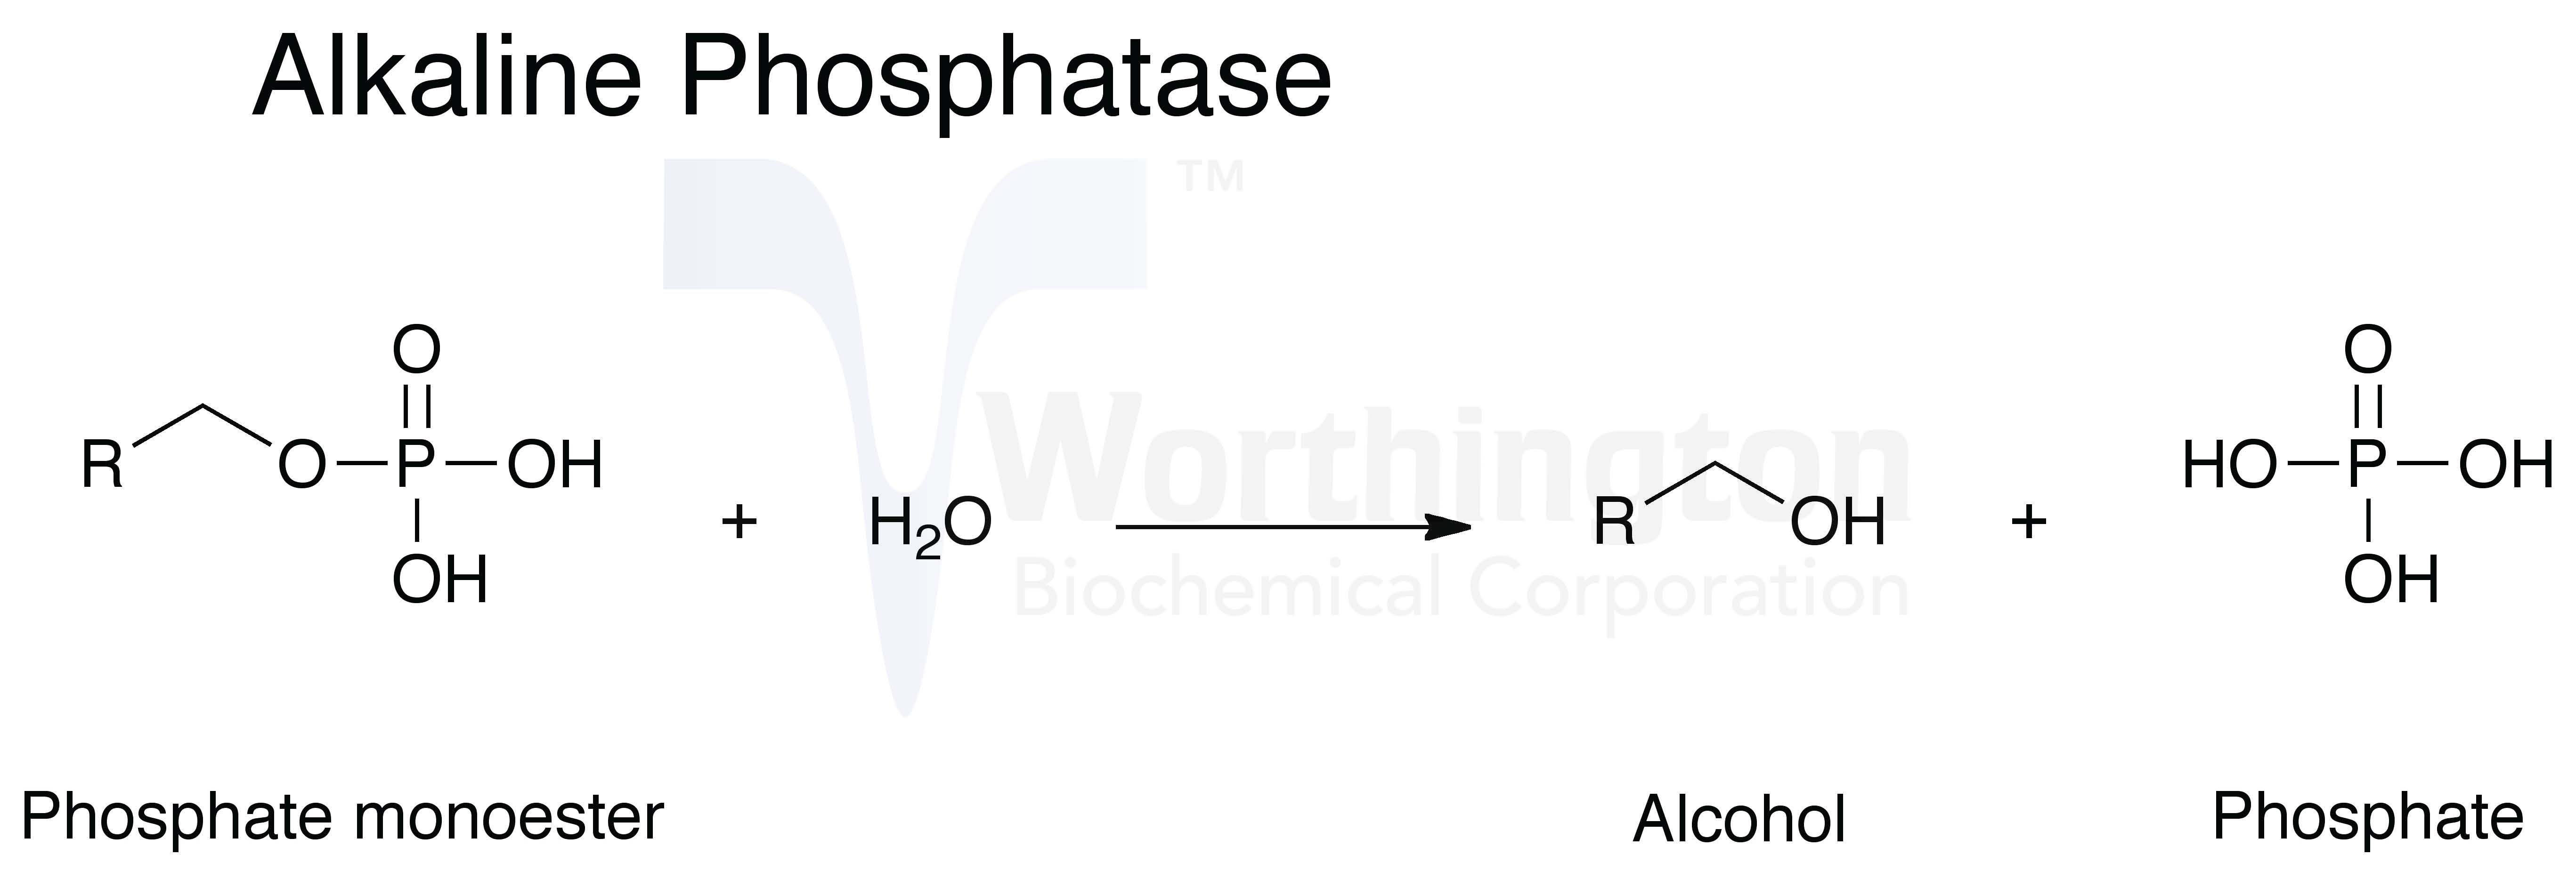 alkaline phosphatase thesis Hepatomegaly is a technical name for enlarged liver as the name implies, it's a condition in which the liver is enlarged or swollenrather than a disease in itself, hepatomegaly is a symptom or complication of other liver conditions, some of them life-threatening.